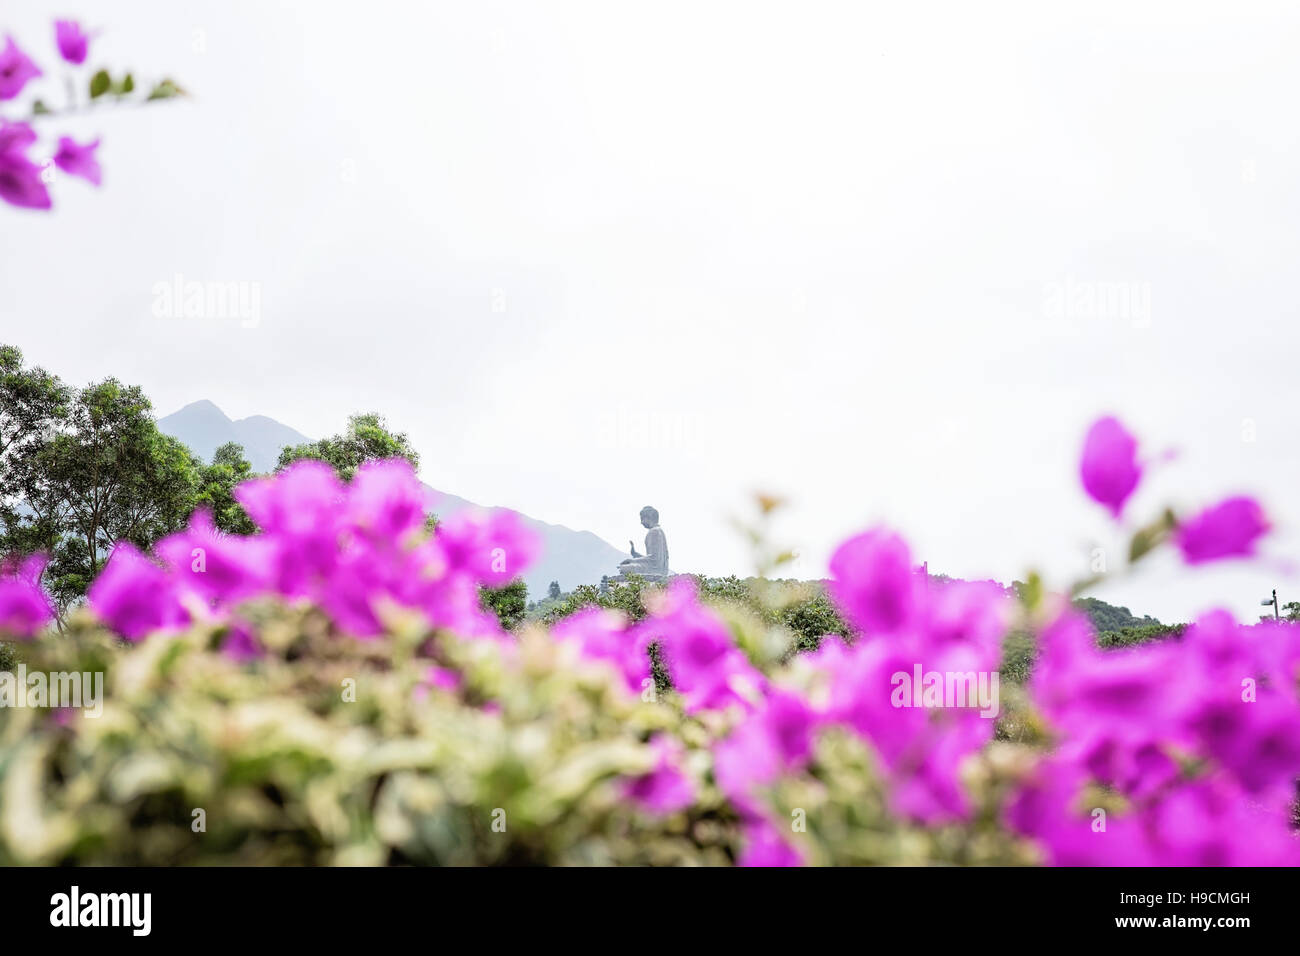 Big Buddha on Lantau Island viewed through purple bougainvilleas, Hong Kong - Stock Image